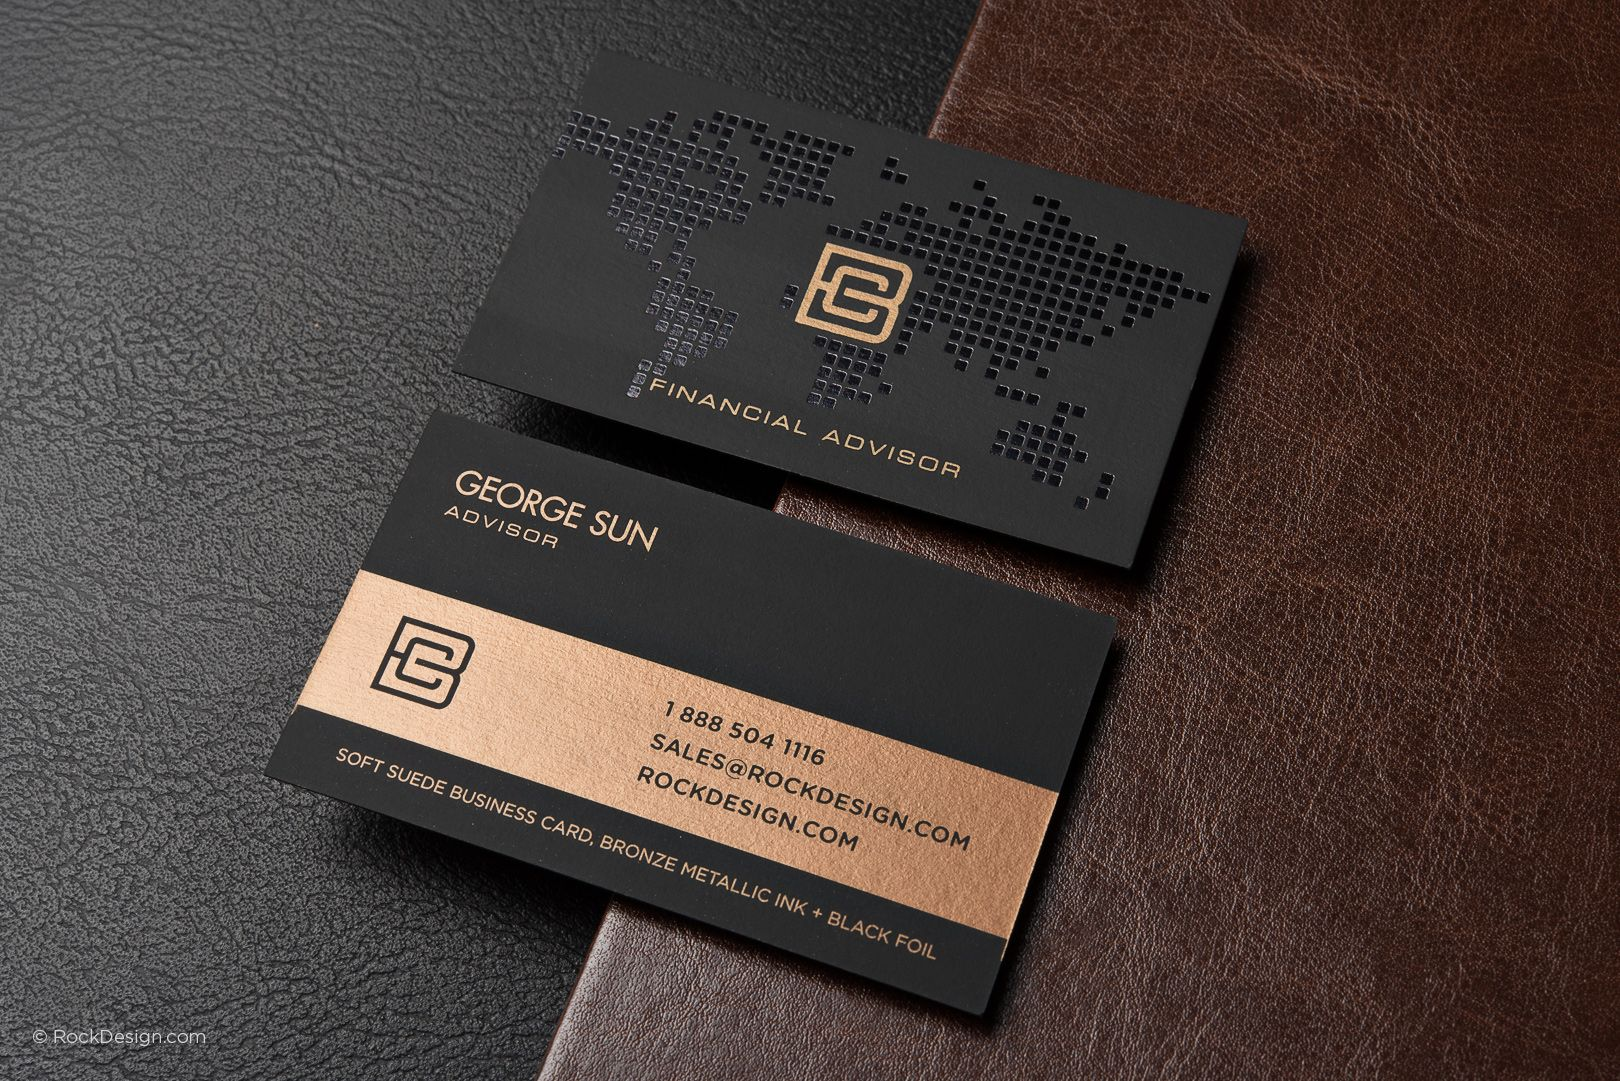 Elegant soft suede business card with metallic ink and foil elegant soft suede business card with metallic ink and foil stamping bc magicingreecefo Choice Image